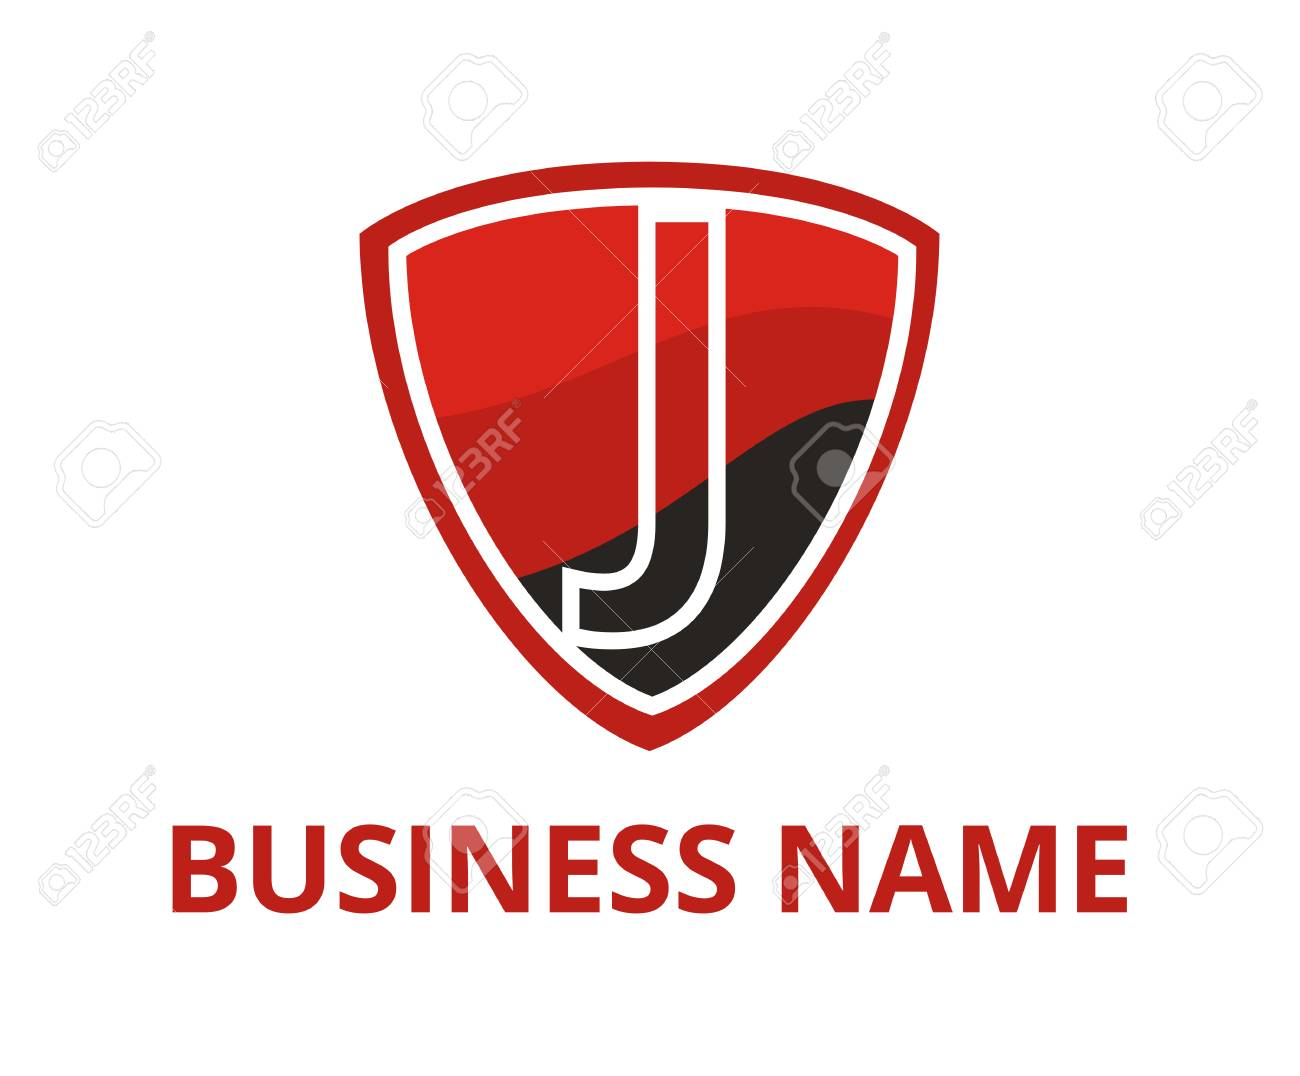 red and black color simple triangle shield logo graphic design with modern clean style for protection or security company with initial type letter j on it - 106828838